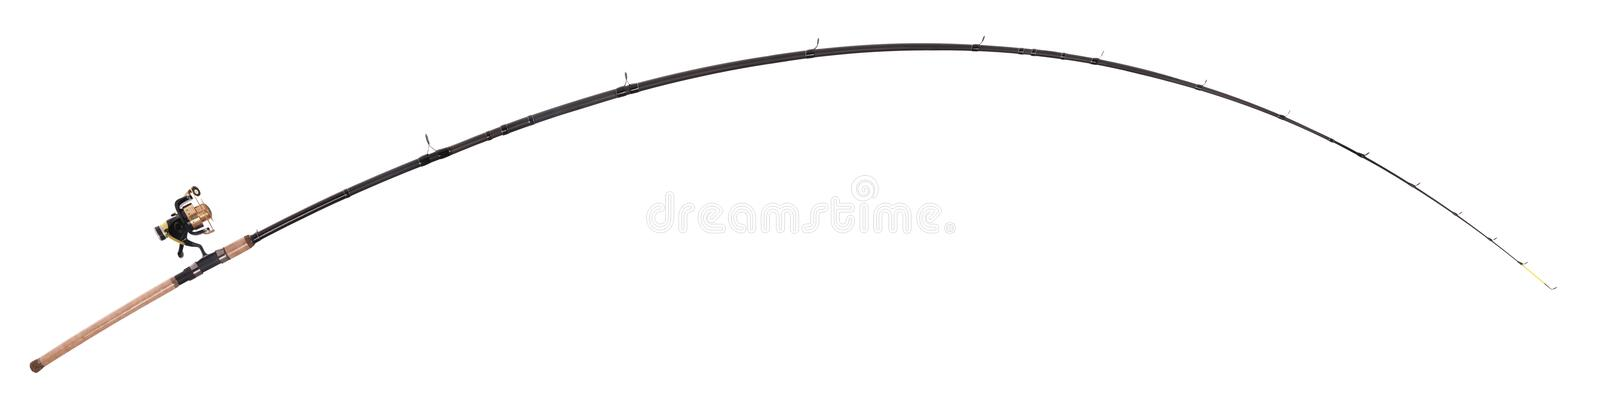 Fishing rod, reel. Actual size, isolated on white stock photos